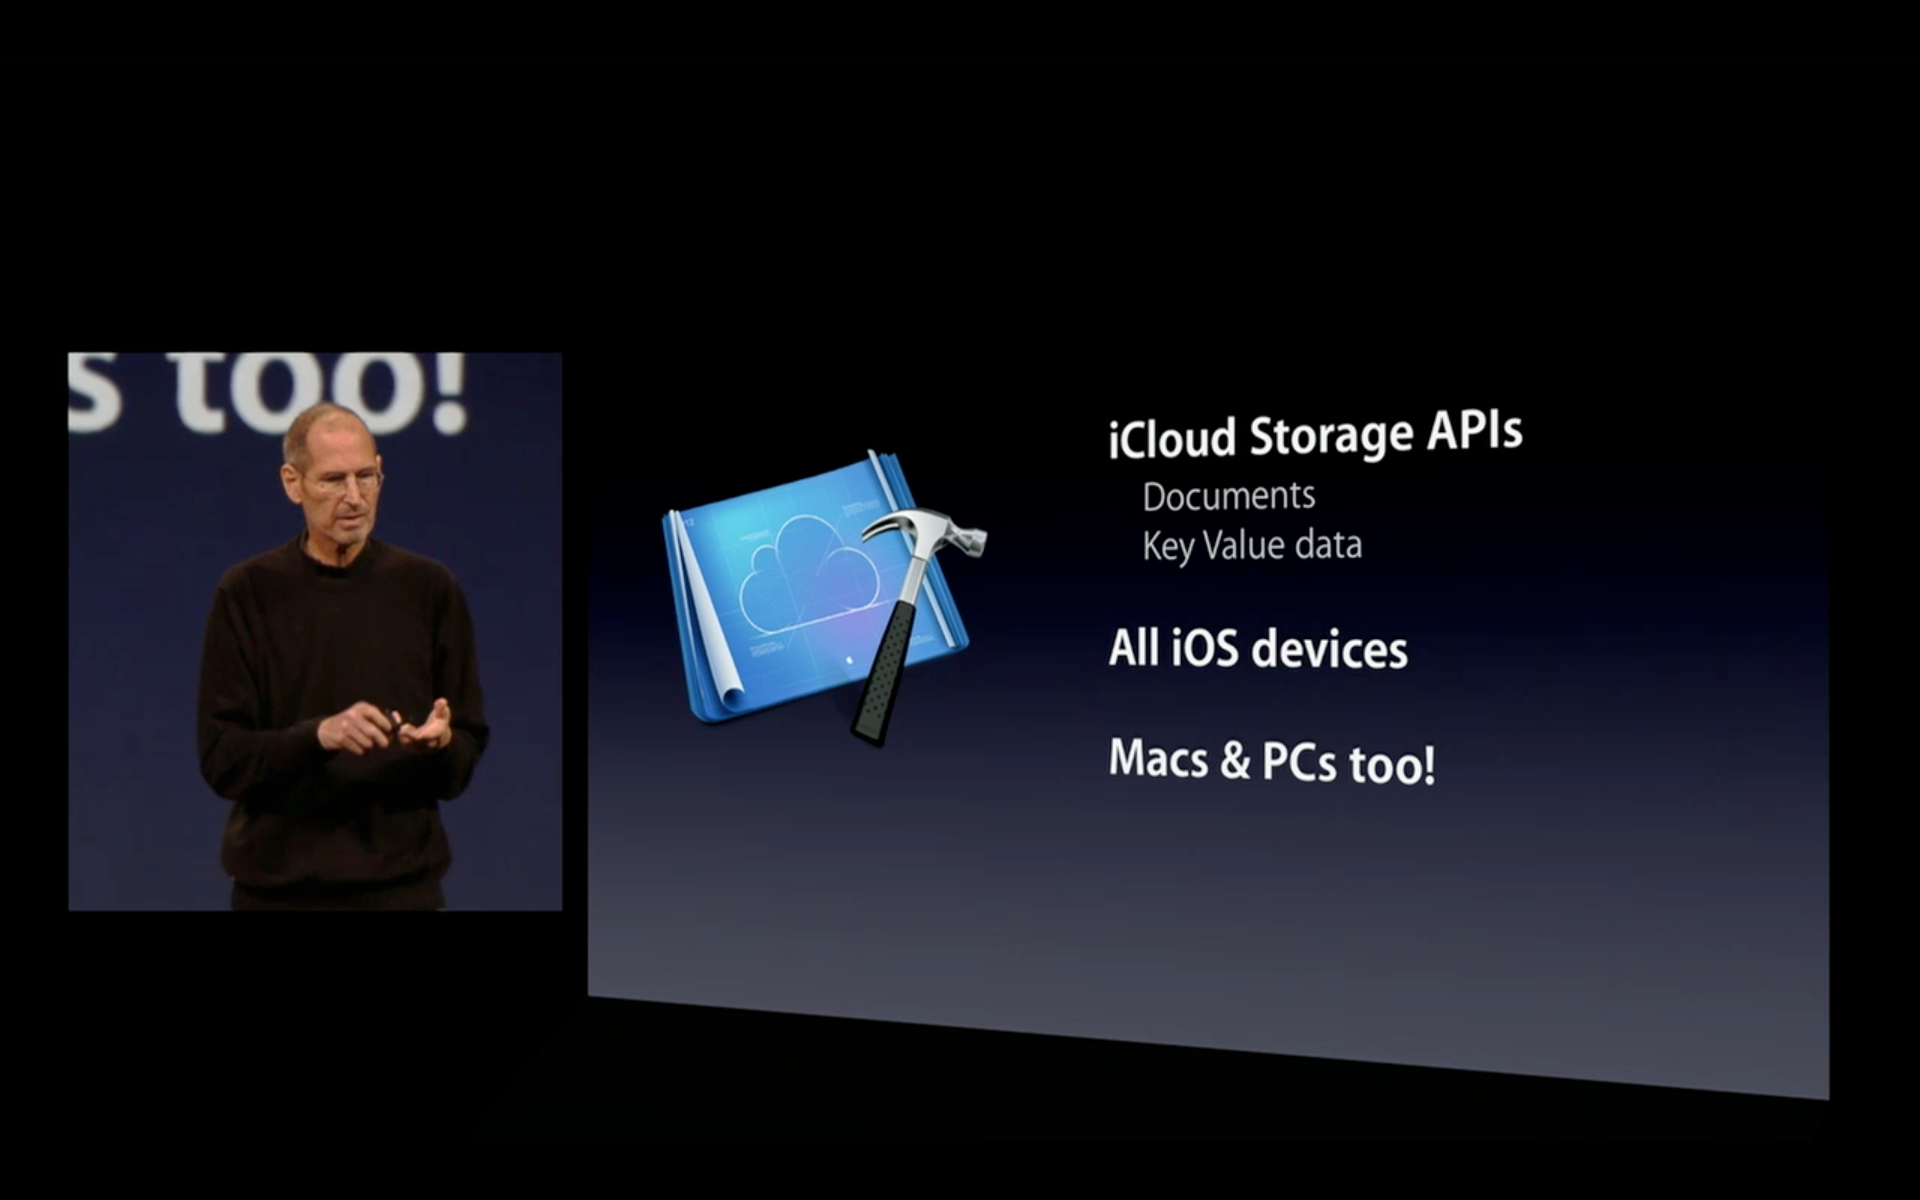 Steve Jobs introducing iCloud Storage APIs at WWDC 2011